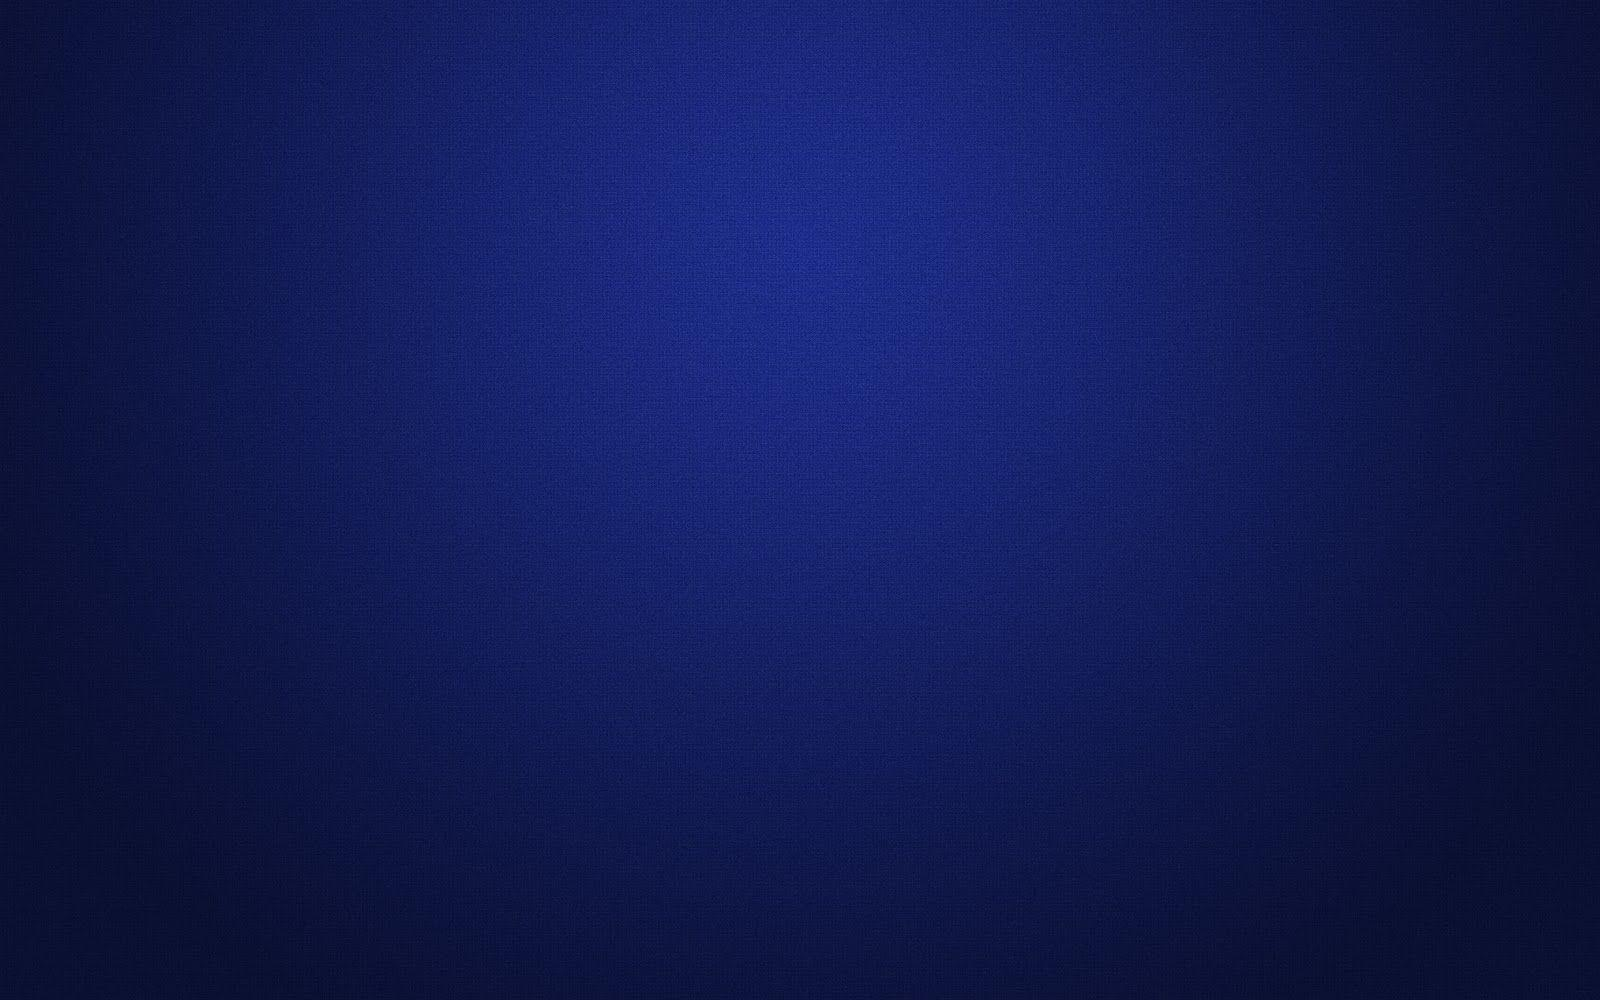 Dark Blue Backgrounds | ECRG